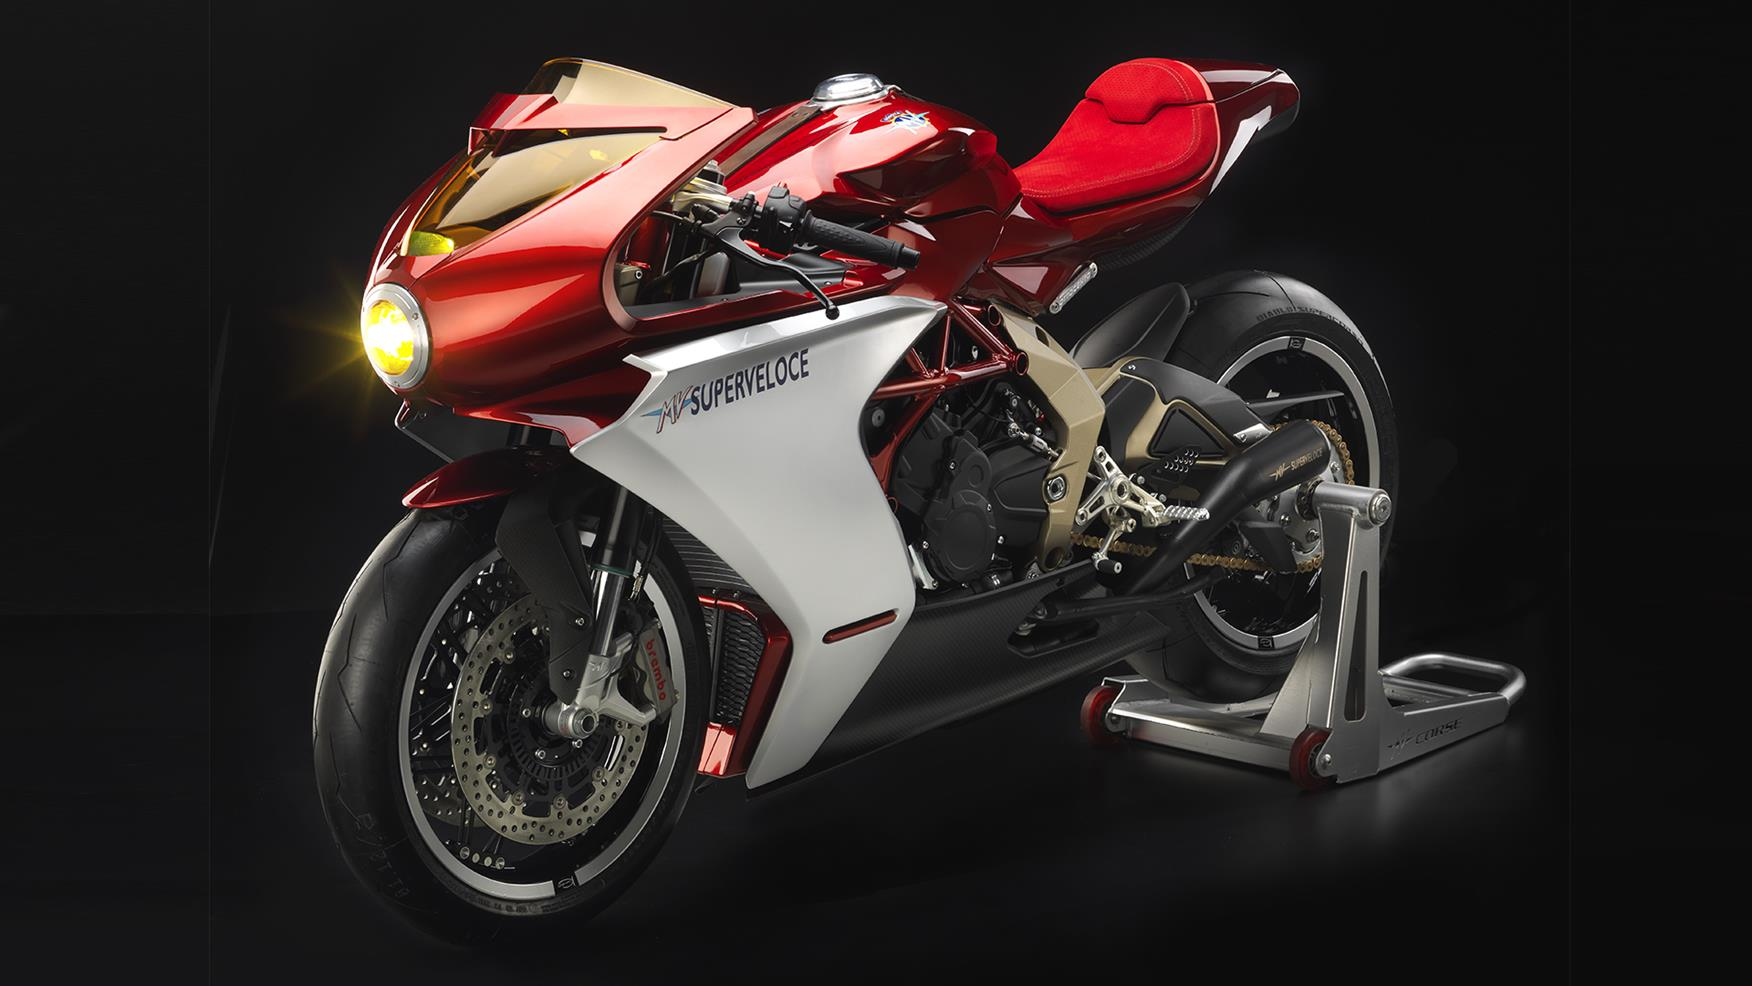 A frontal view of the MV Agusta Superveloce 800 Serie Oro